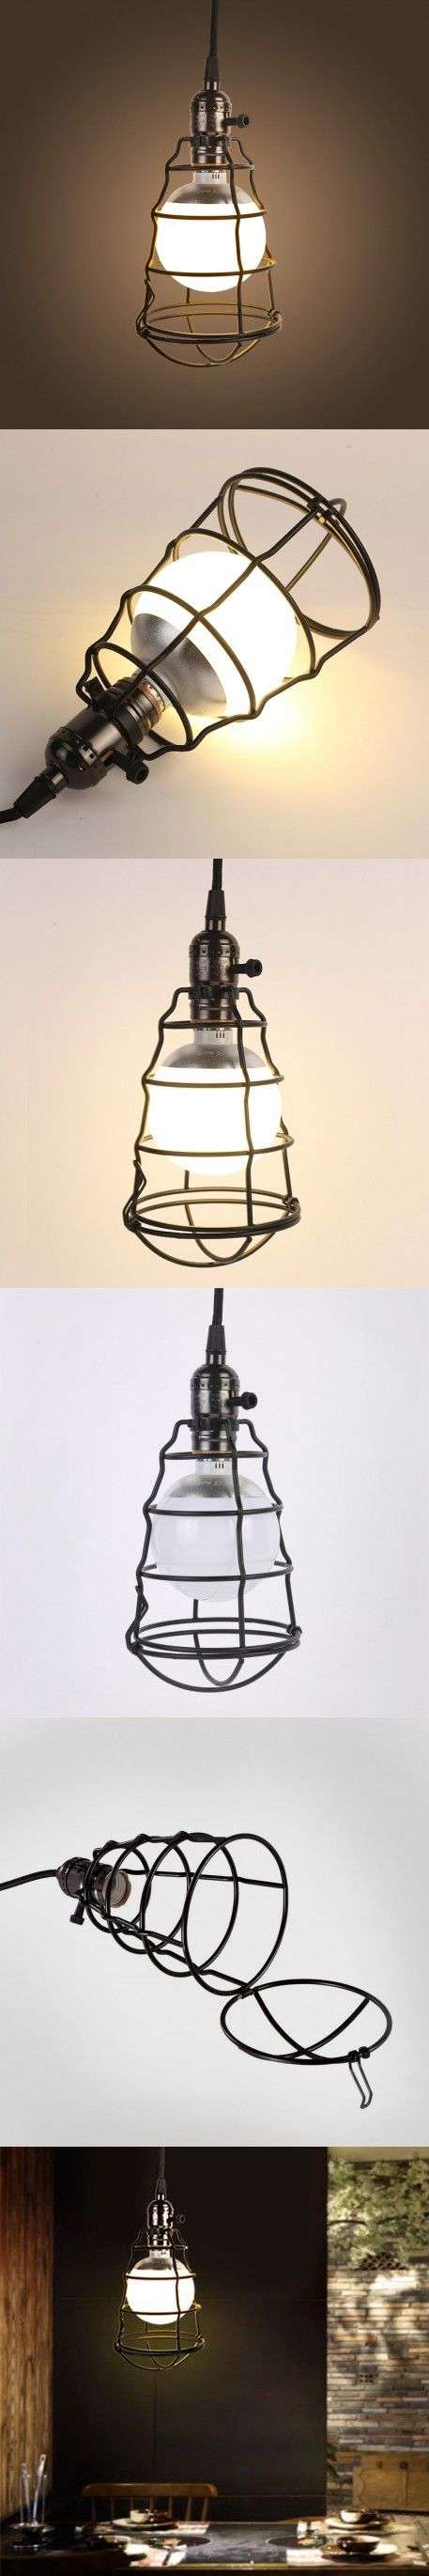 Classical Retro Pendant Lights Industrial Home Lighting Lamp E27 Birdcage LED Pendant Light Hanging Lamps For Home Decoration $42.97